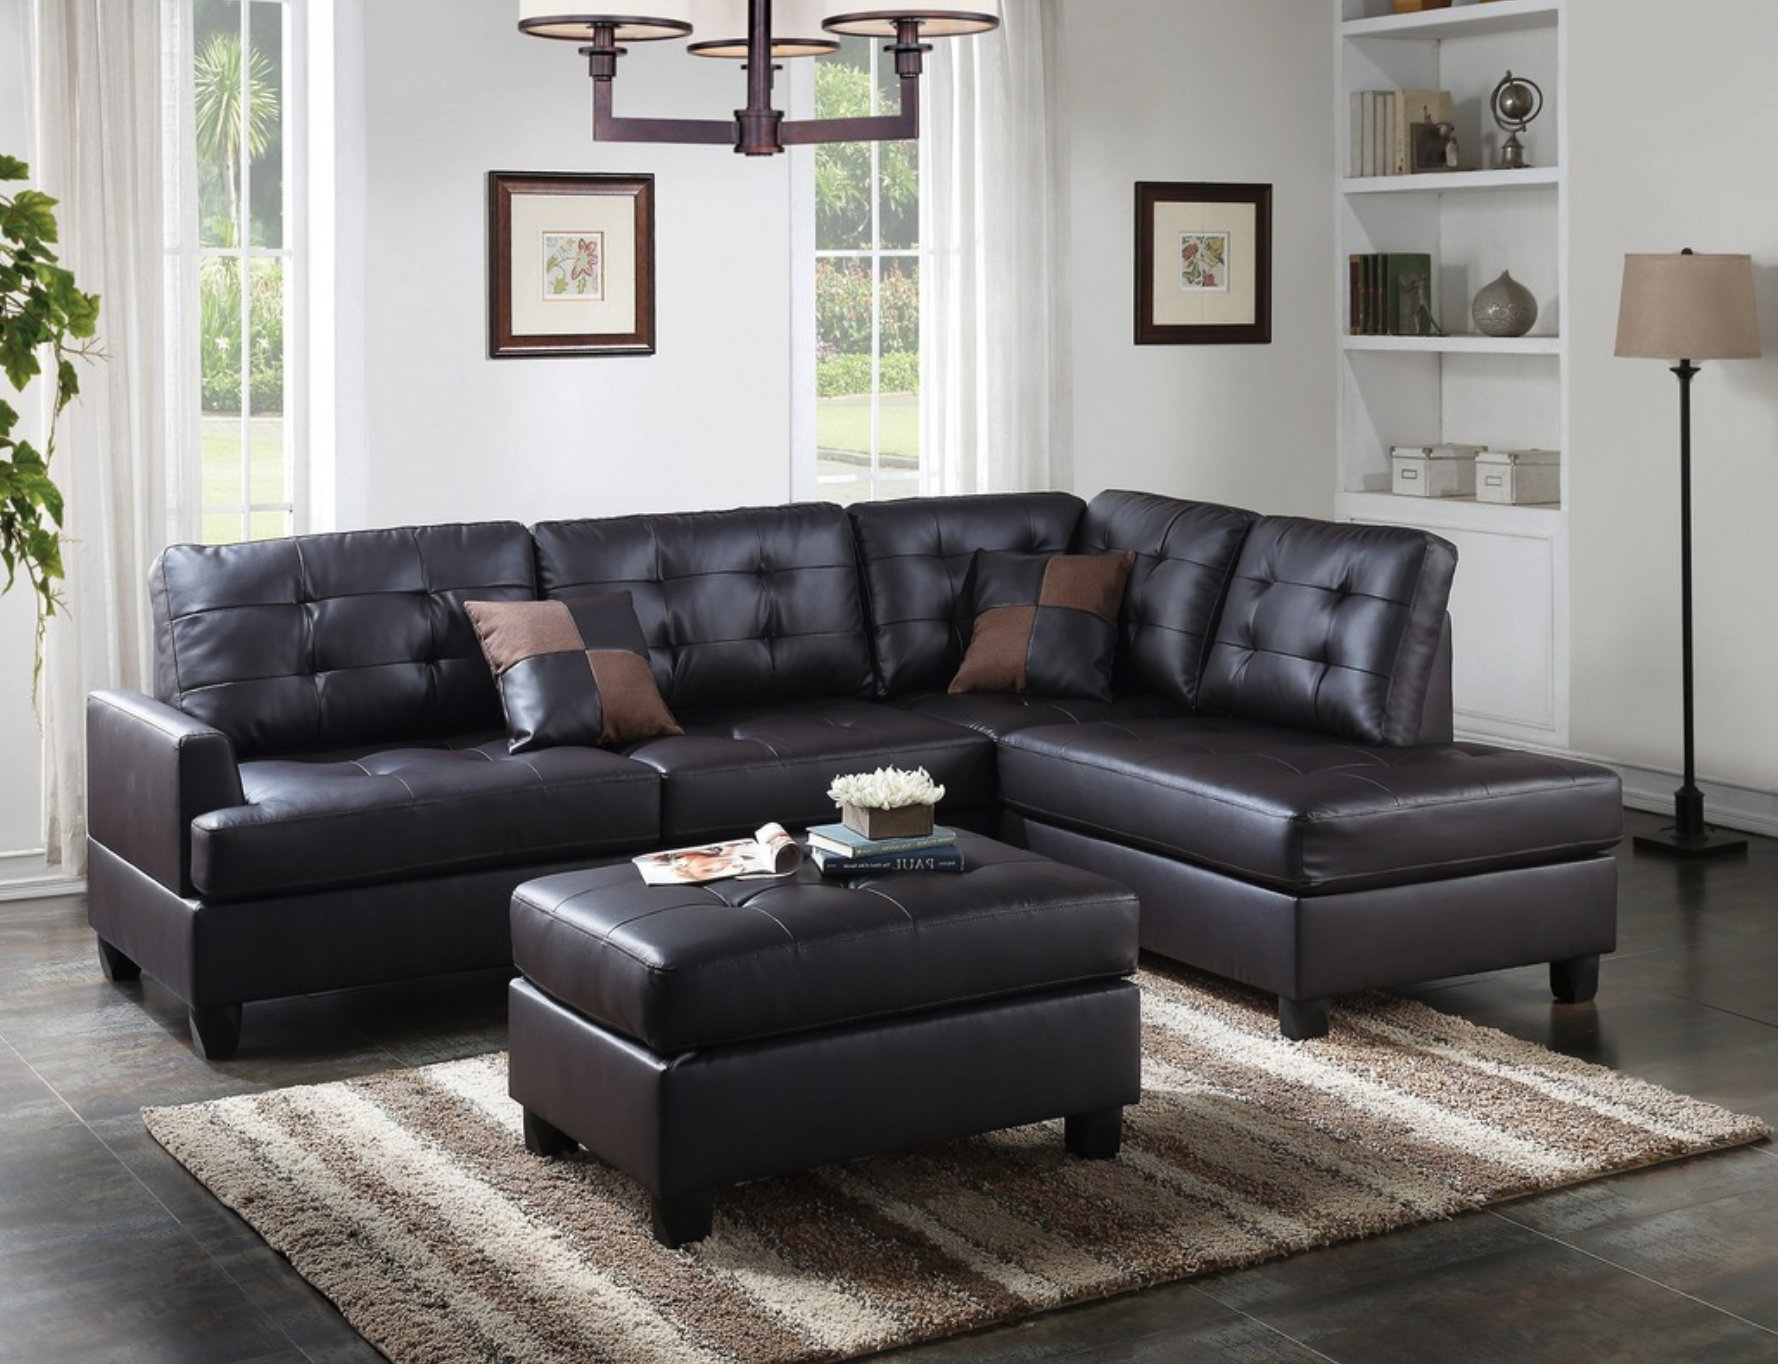 3 PCS SECTIONAL (3 Colors Available)